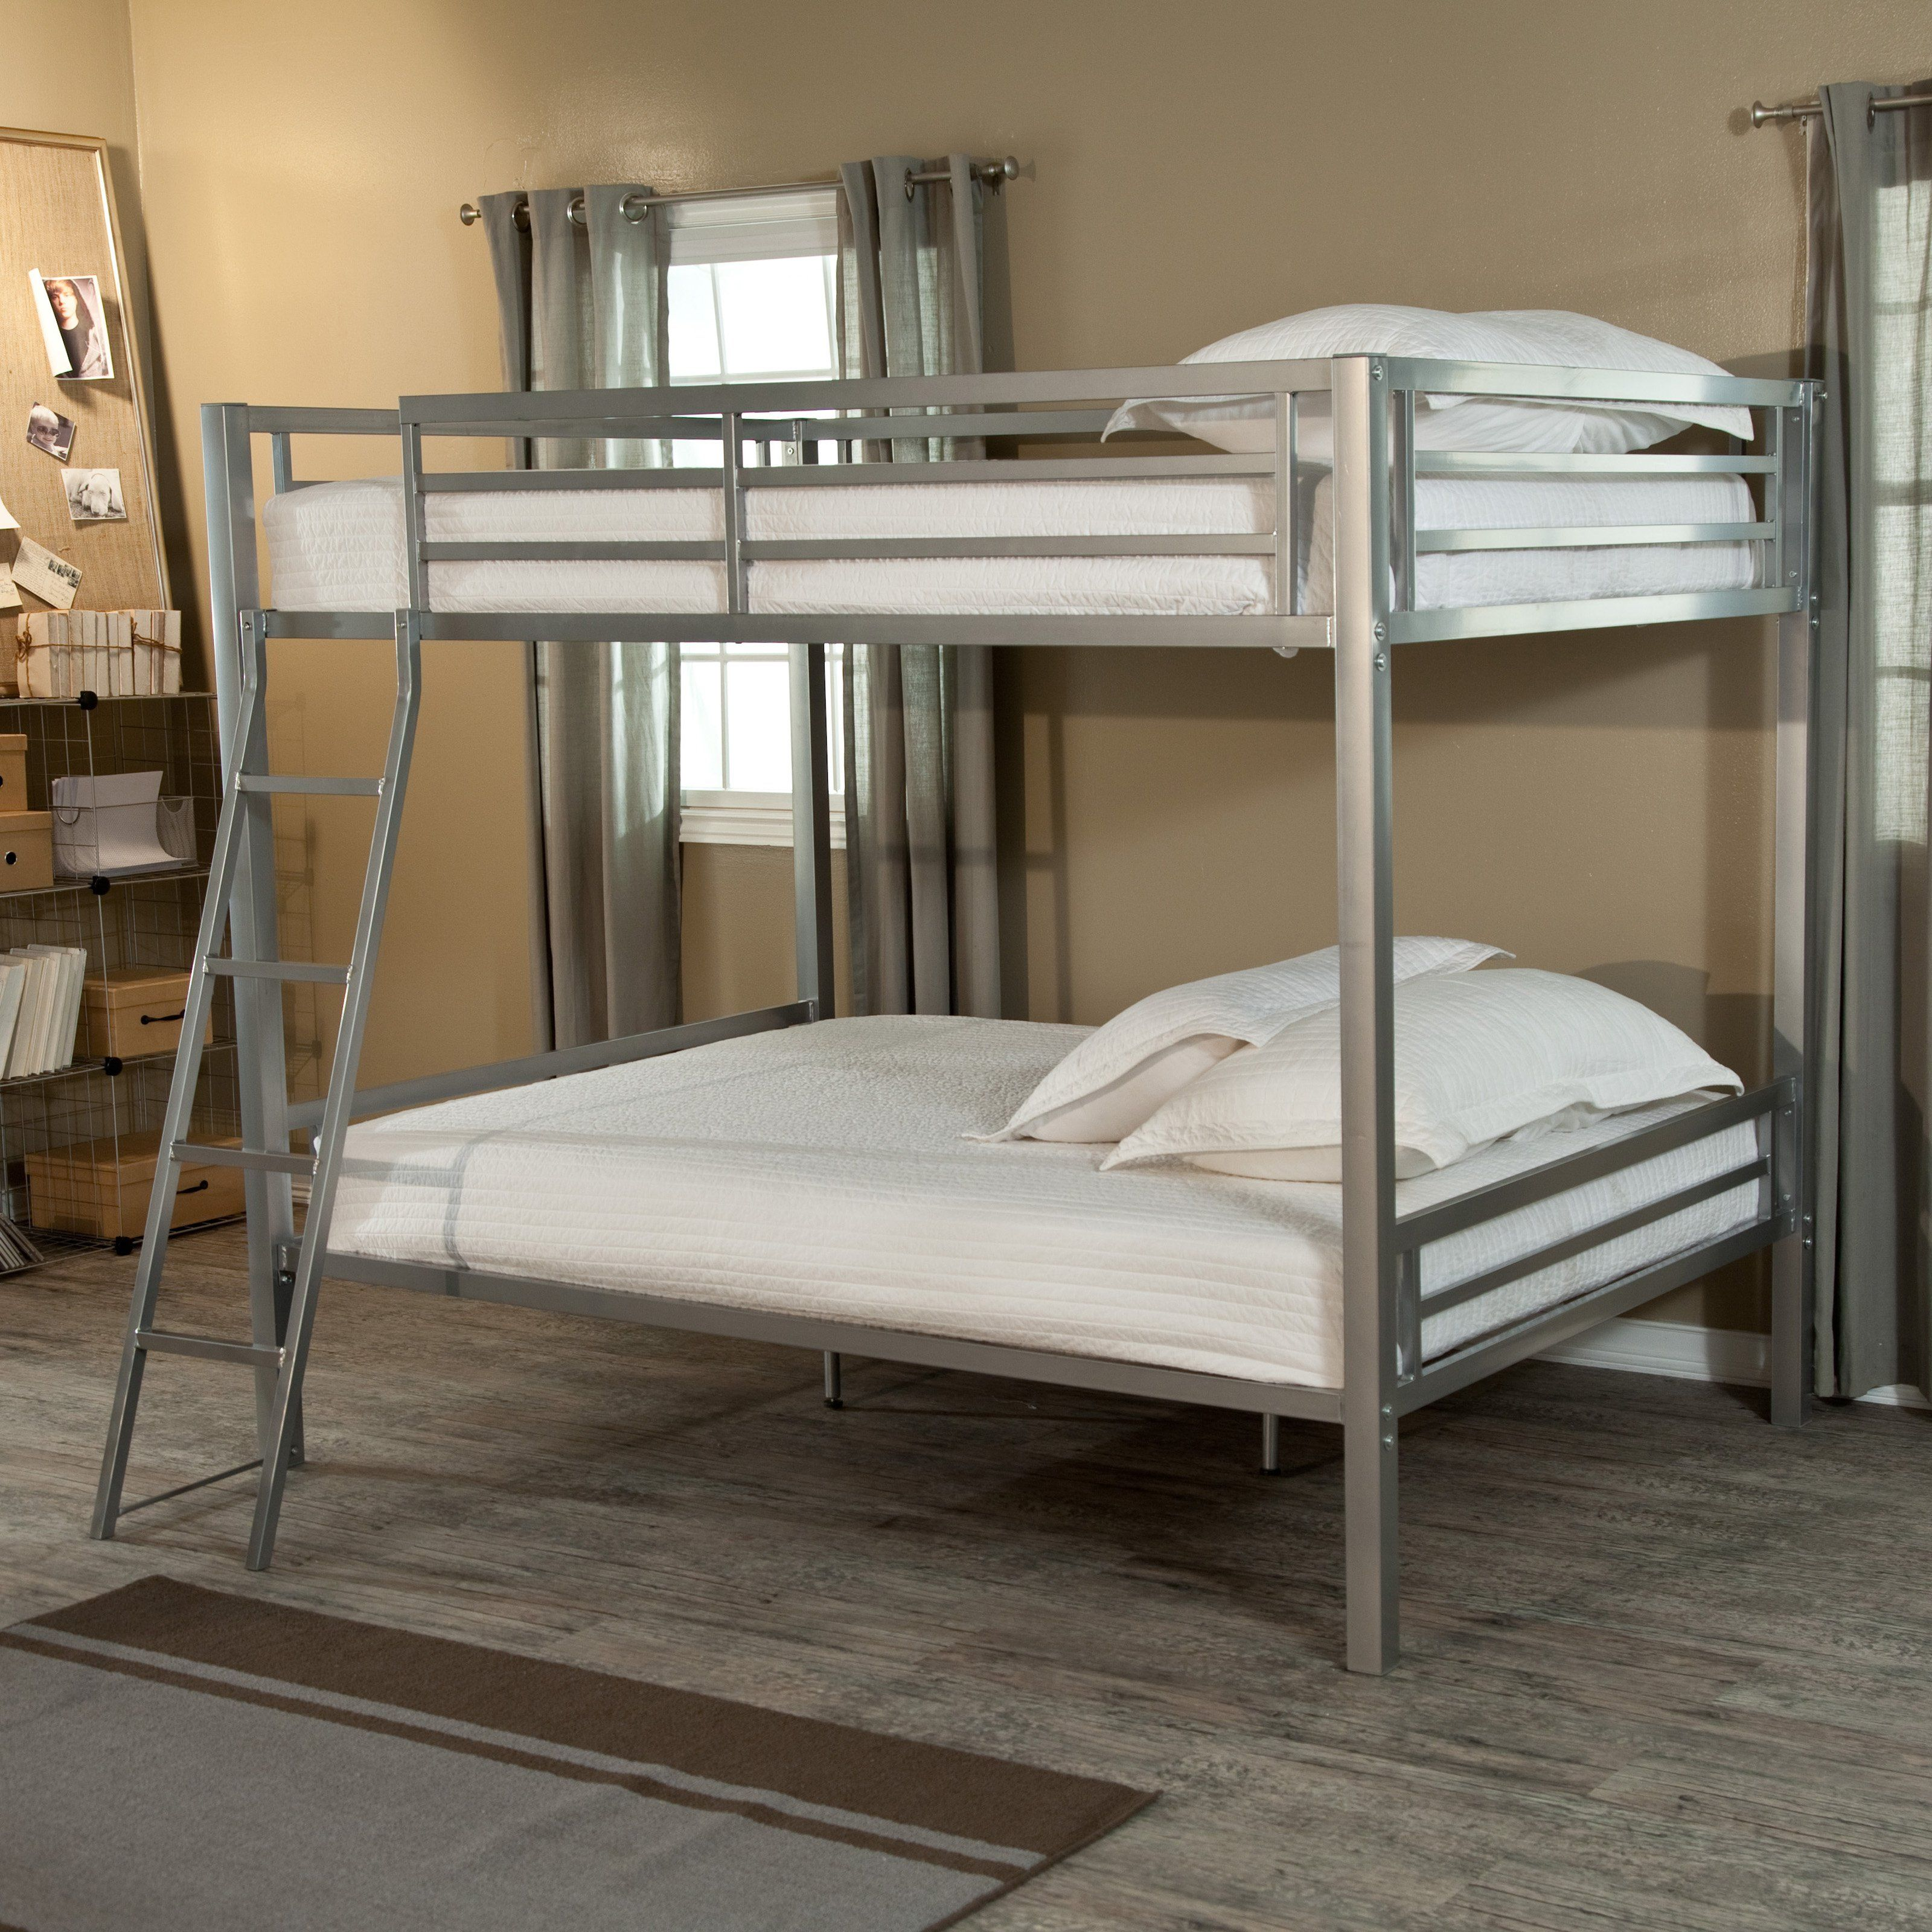 329 98 Bunk Beds For Grown Ups Sturdy Enough For My Husband S